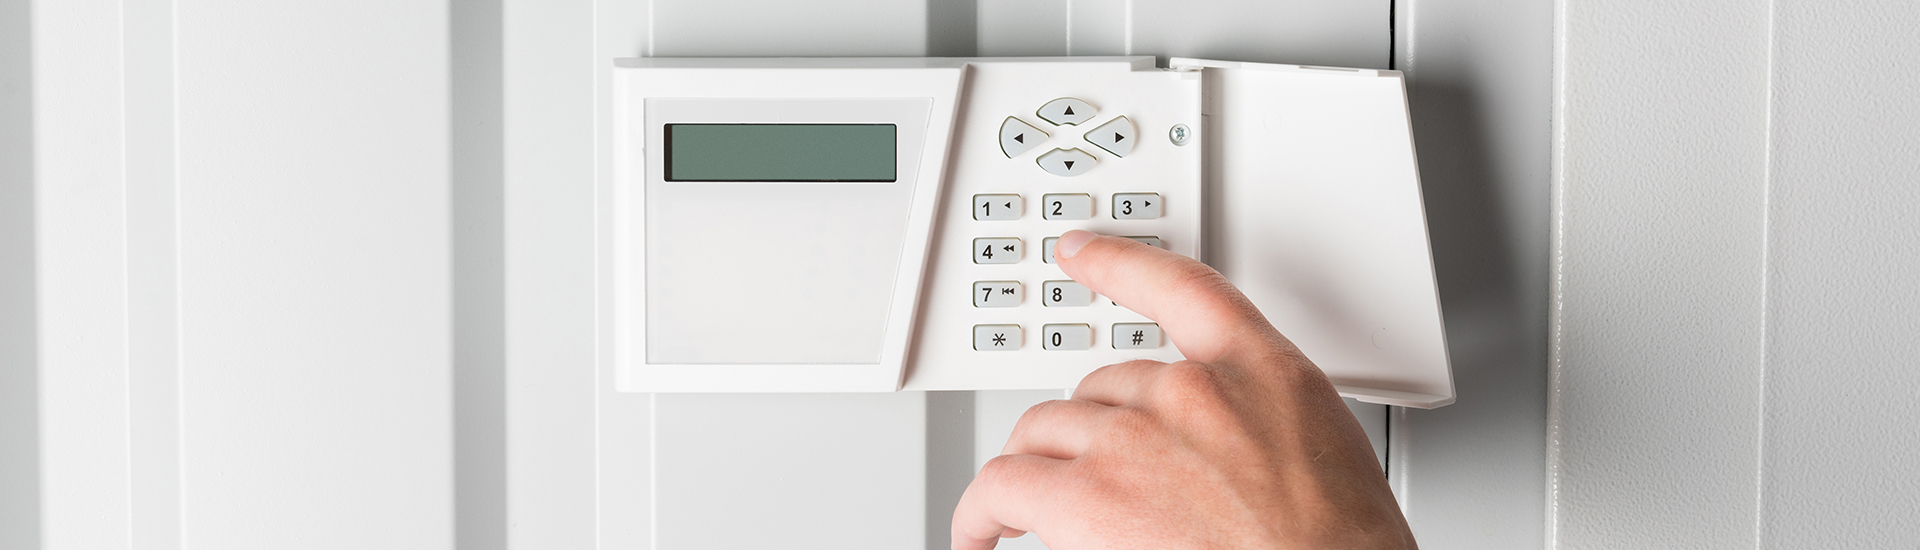 Alarm Systems in Raleigh, Cary, Burlington NC, Chapel Hill, Durham, Apex NC